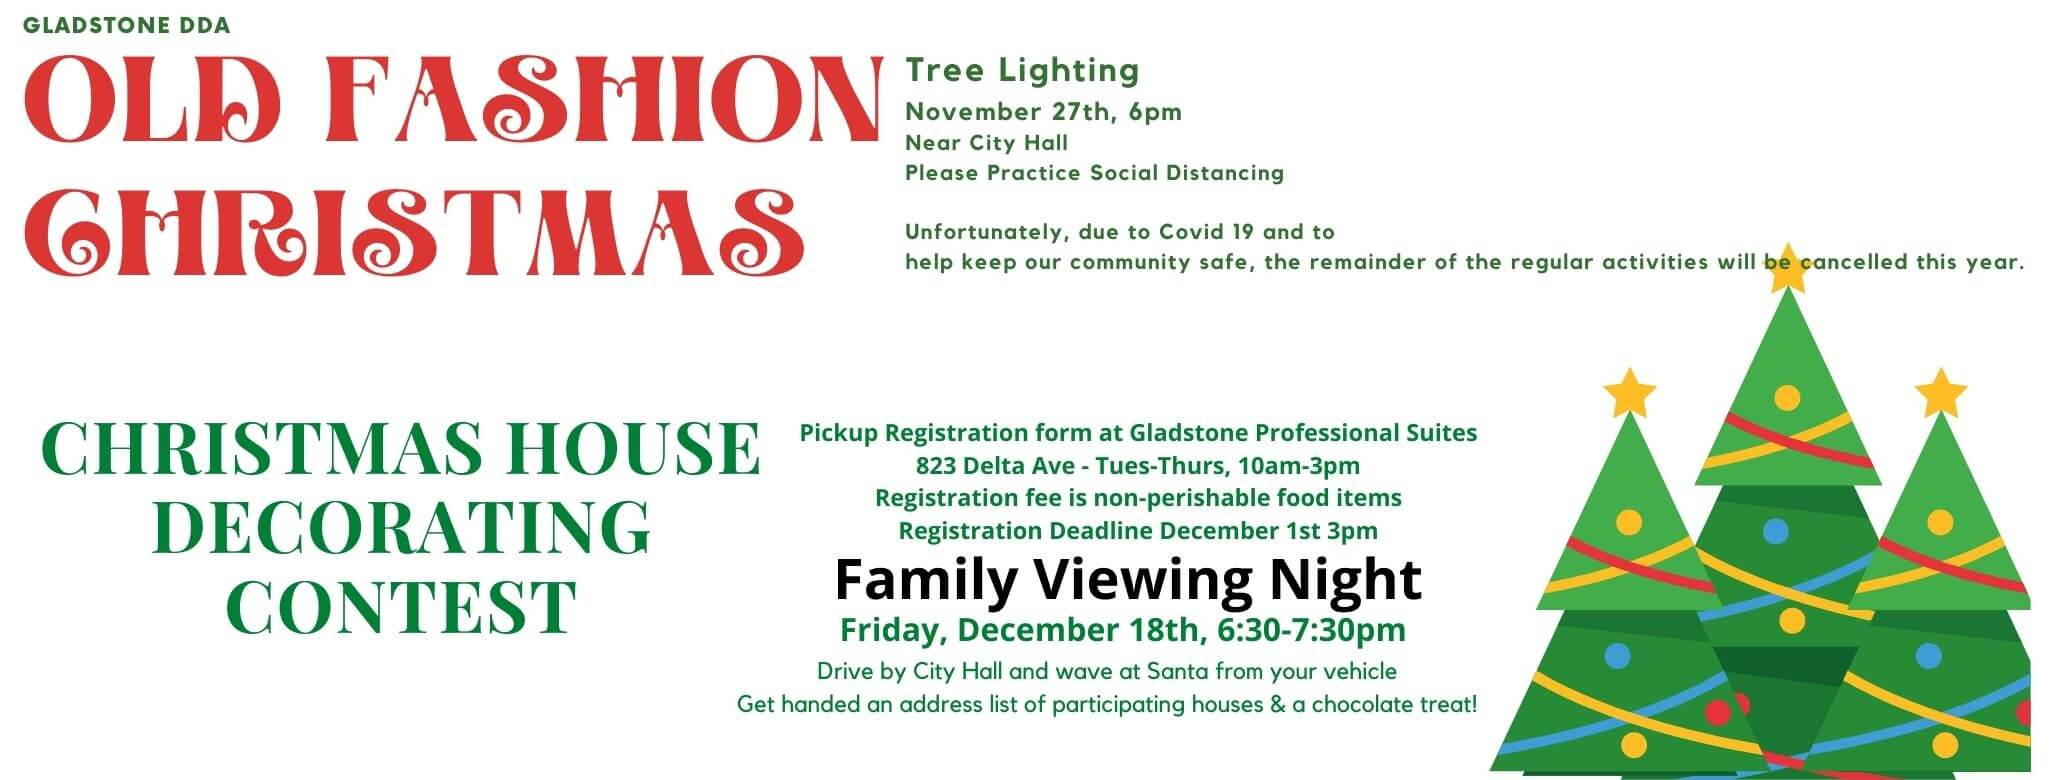 Gladstone DDA Old Fashion Christmas Tree lighting November 27th, 6pm, Near City Hall Please practice social distancing. Unfortunately, due to Covid-19 and to help keep our community safe, the remainder of the regular activities will be cancelled this year. Christmas House Decorating Contest. Pickup Registration from at Gladstone Prefessional Suites, 823 Delta AVe. Tuesday-Thursday from 10 am to 3 pm. Registration fee is non-perishable food items, Registration fee is non-perishable food items, Registration Deadline is December 1st by 3pm. Family Viewing Night is Friday December 18th, 6:30 to 7:30 pm. Drive by City Hall and wave at Santa from your vehicle. Get handed an addrfess list of participating houses and a chocolate treat!